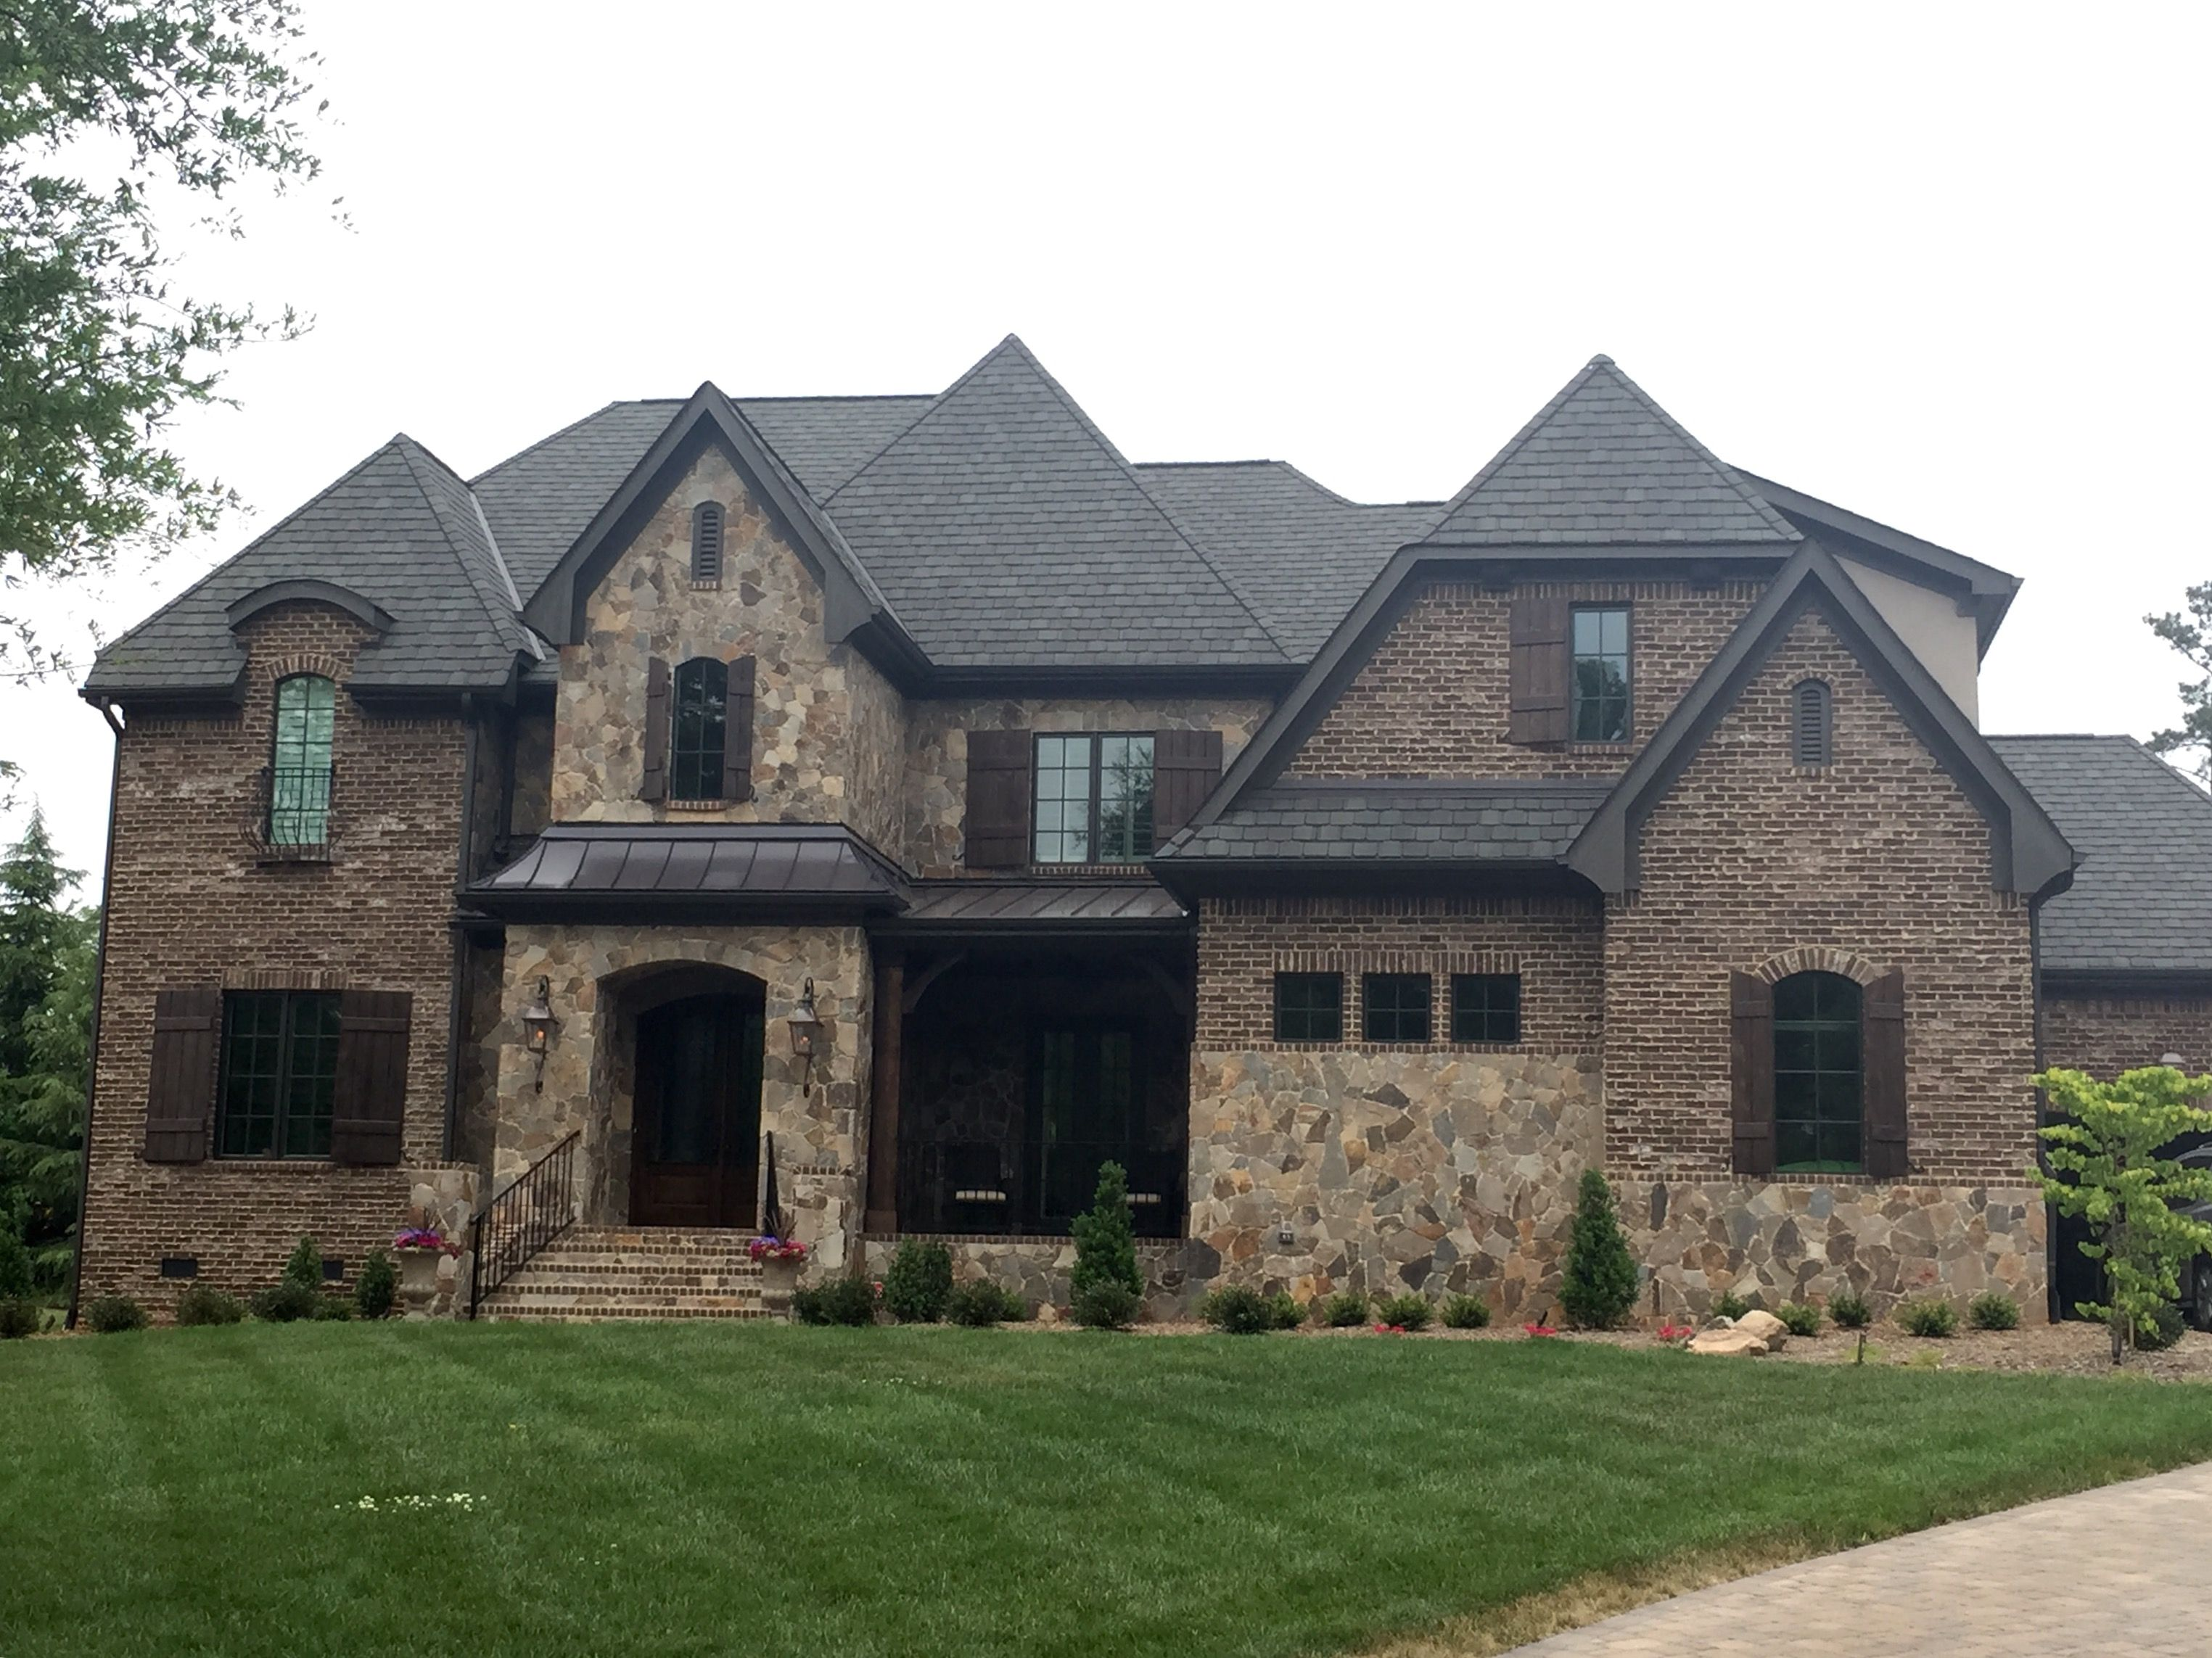 Arh silveroak plan exterior 39 stone chocolate gray for Metal roof pictures brick house